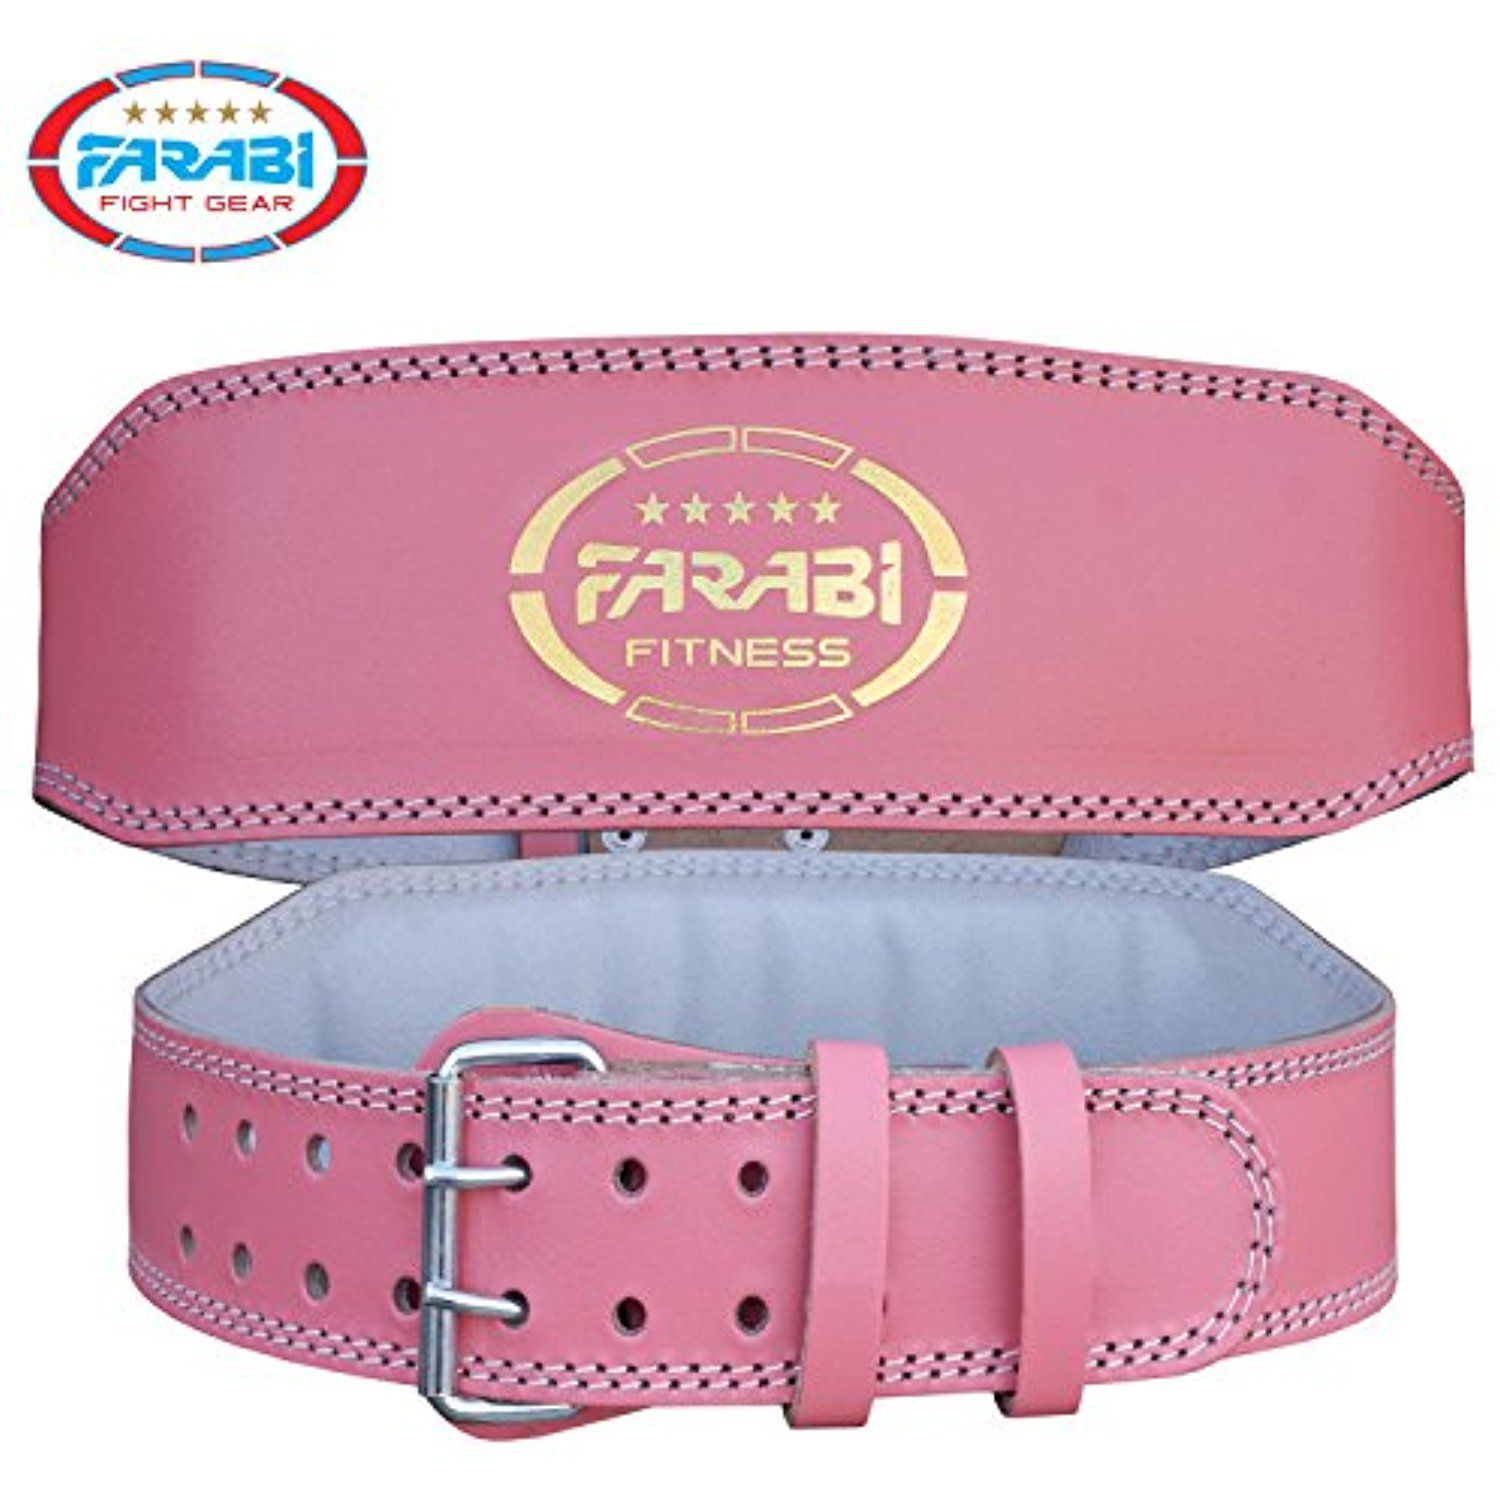 CLEARANCE Pro Weight Lifting Leather Fitness Belt Back Lumbar Support Strap Gym